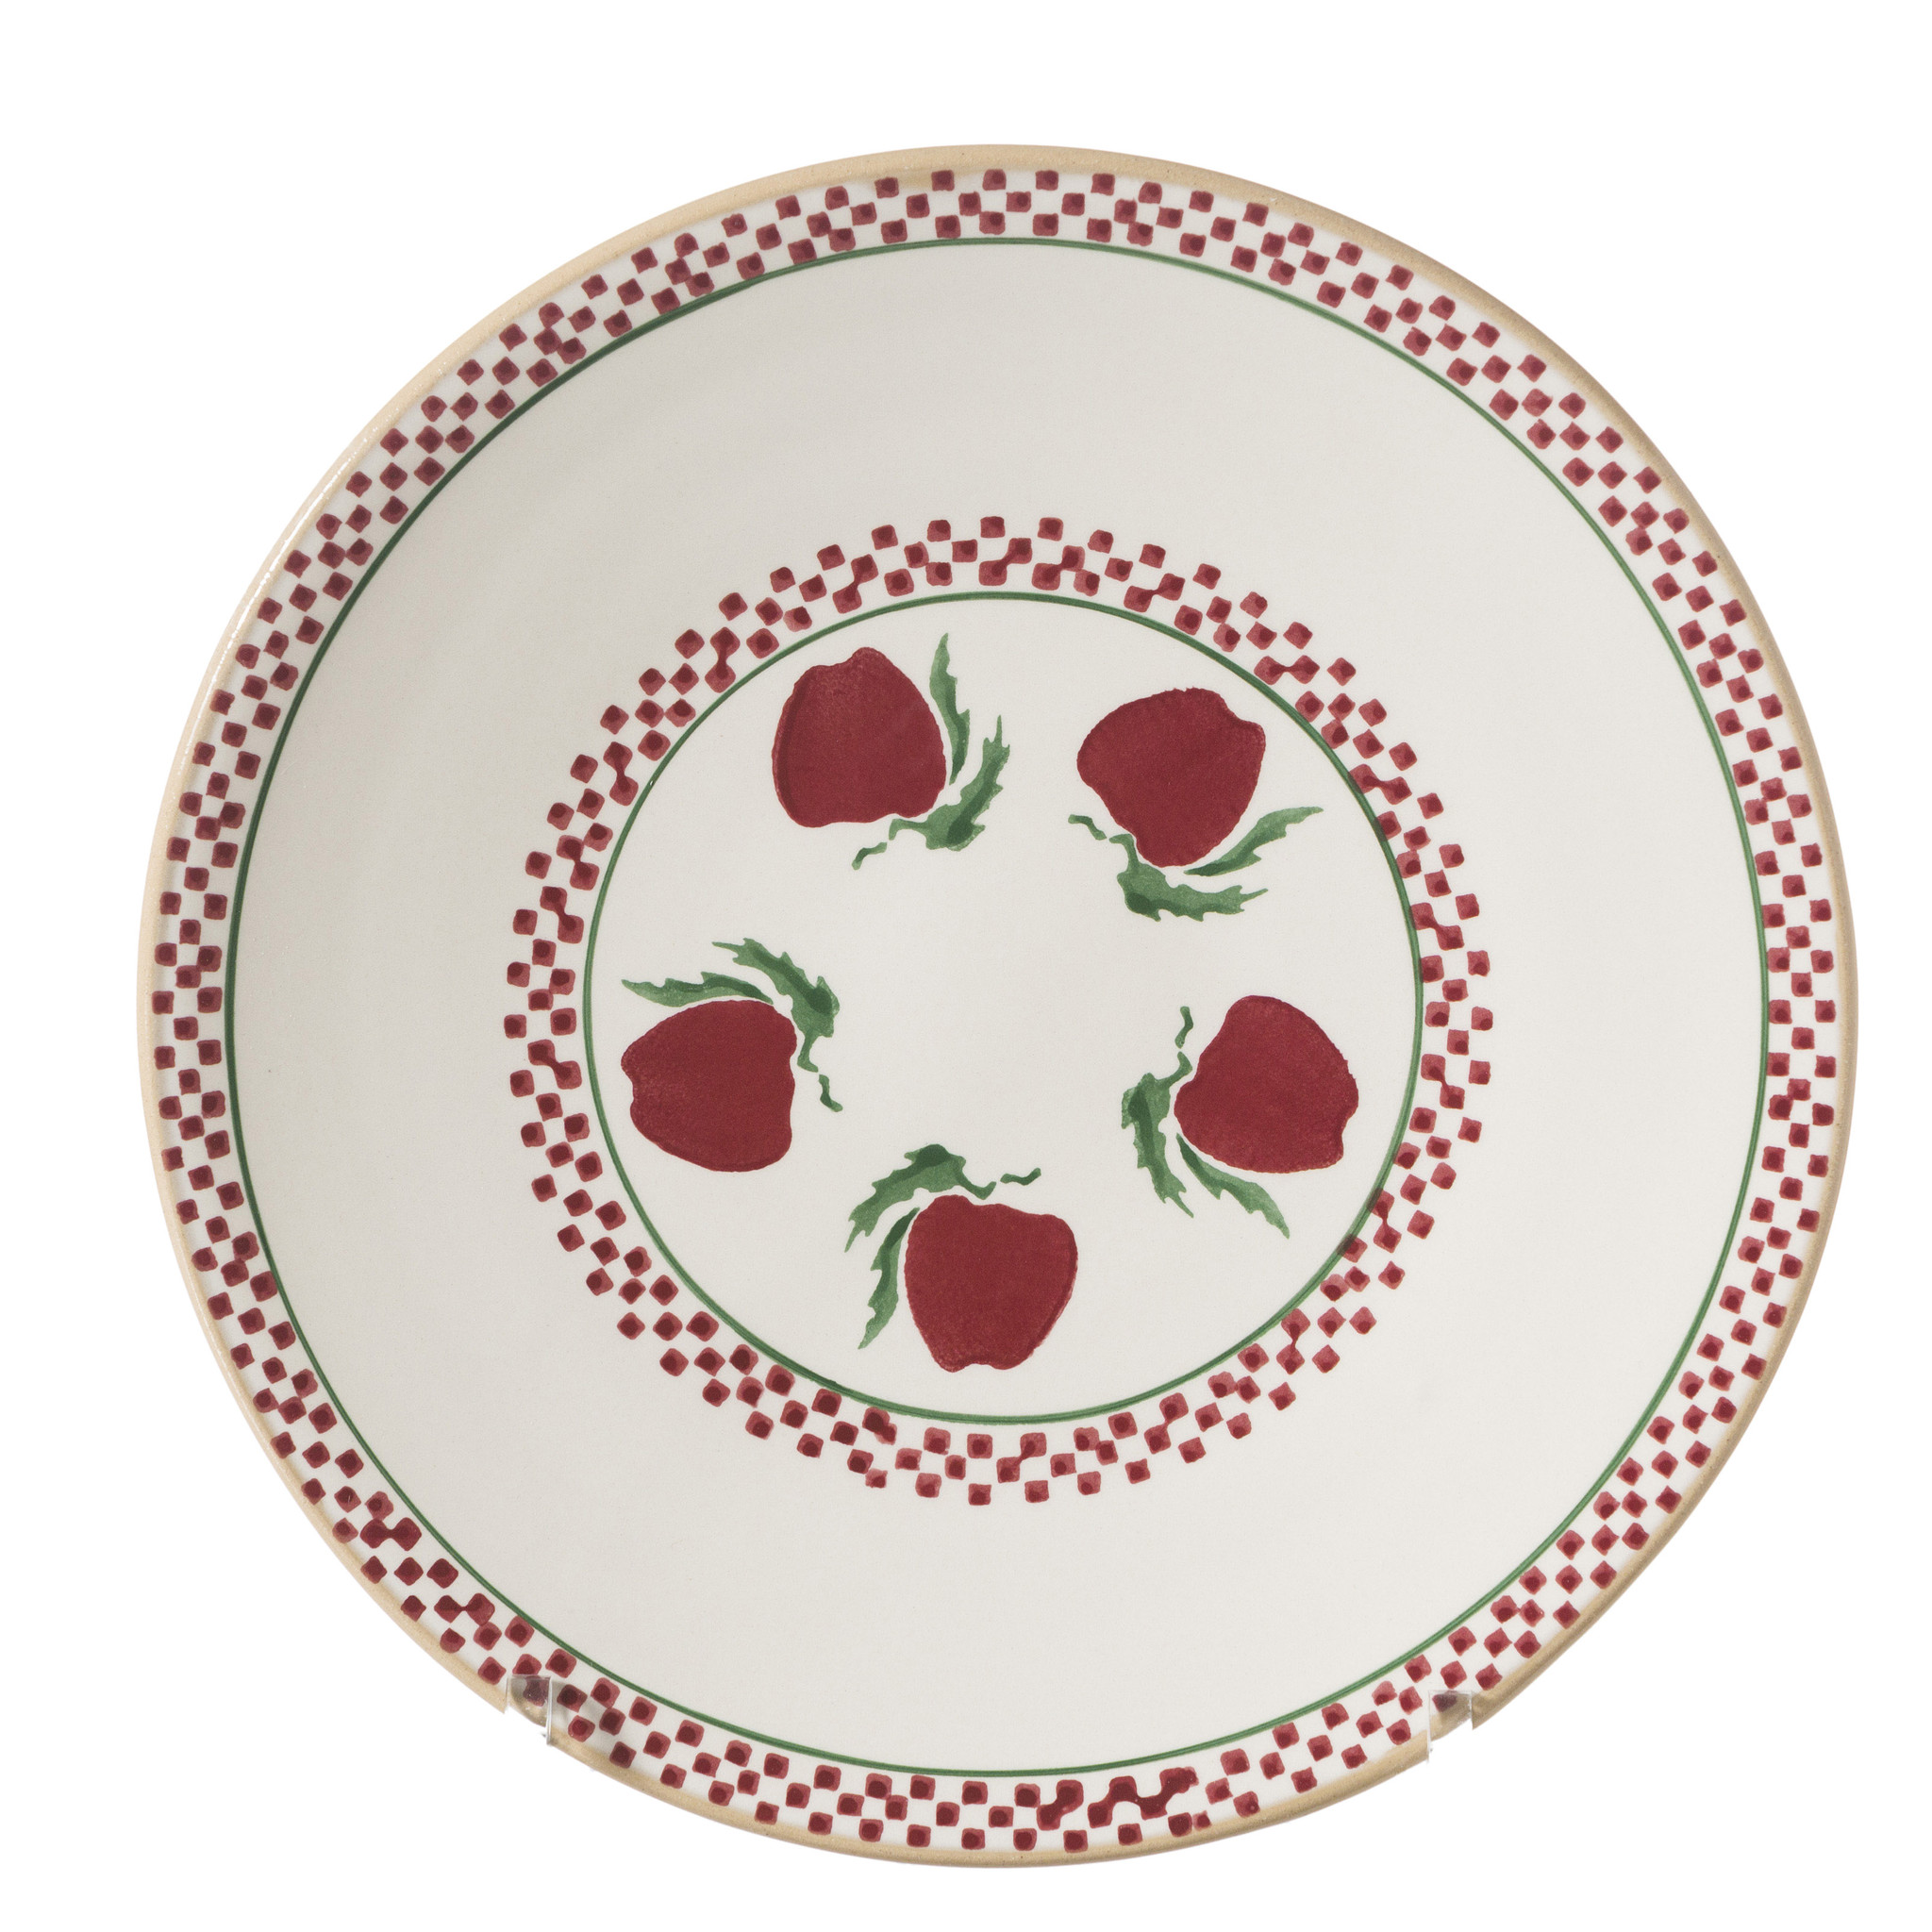 Apple Everyday Plate